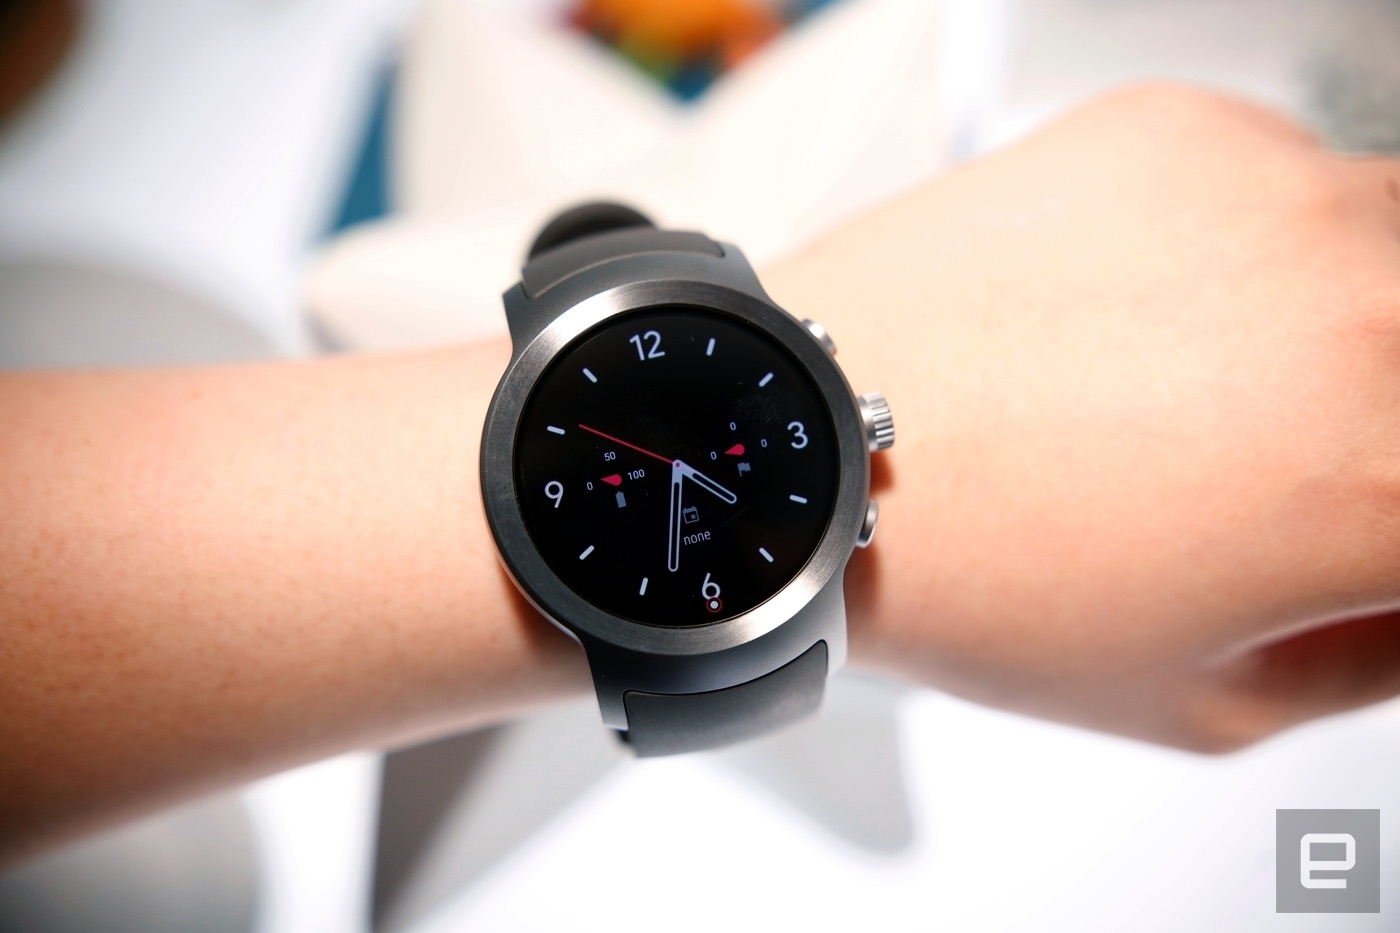 Google removes Android Wear section from its online store | DeviceDaily.com